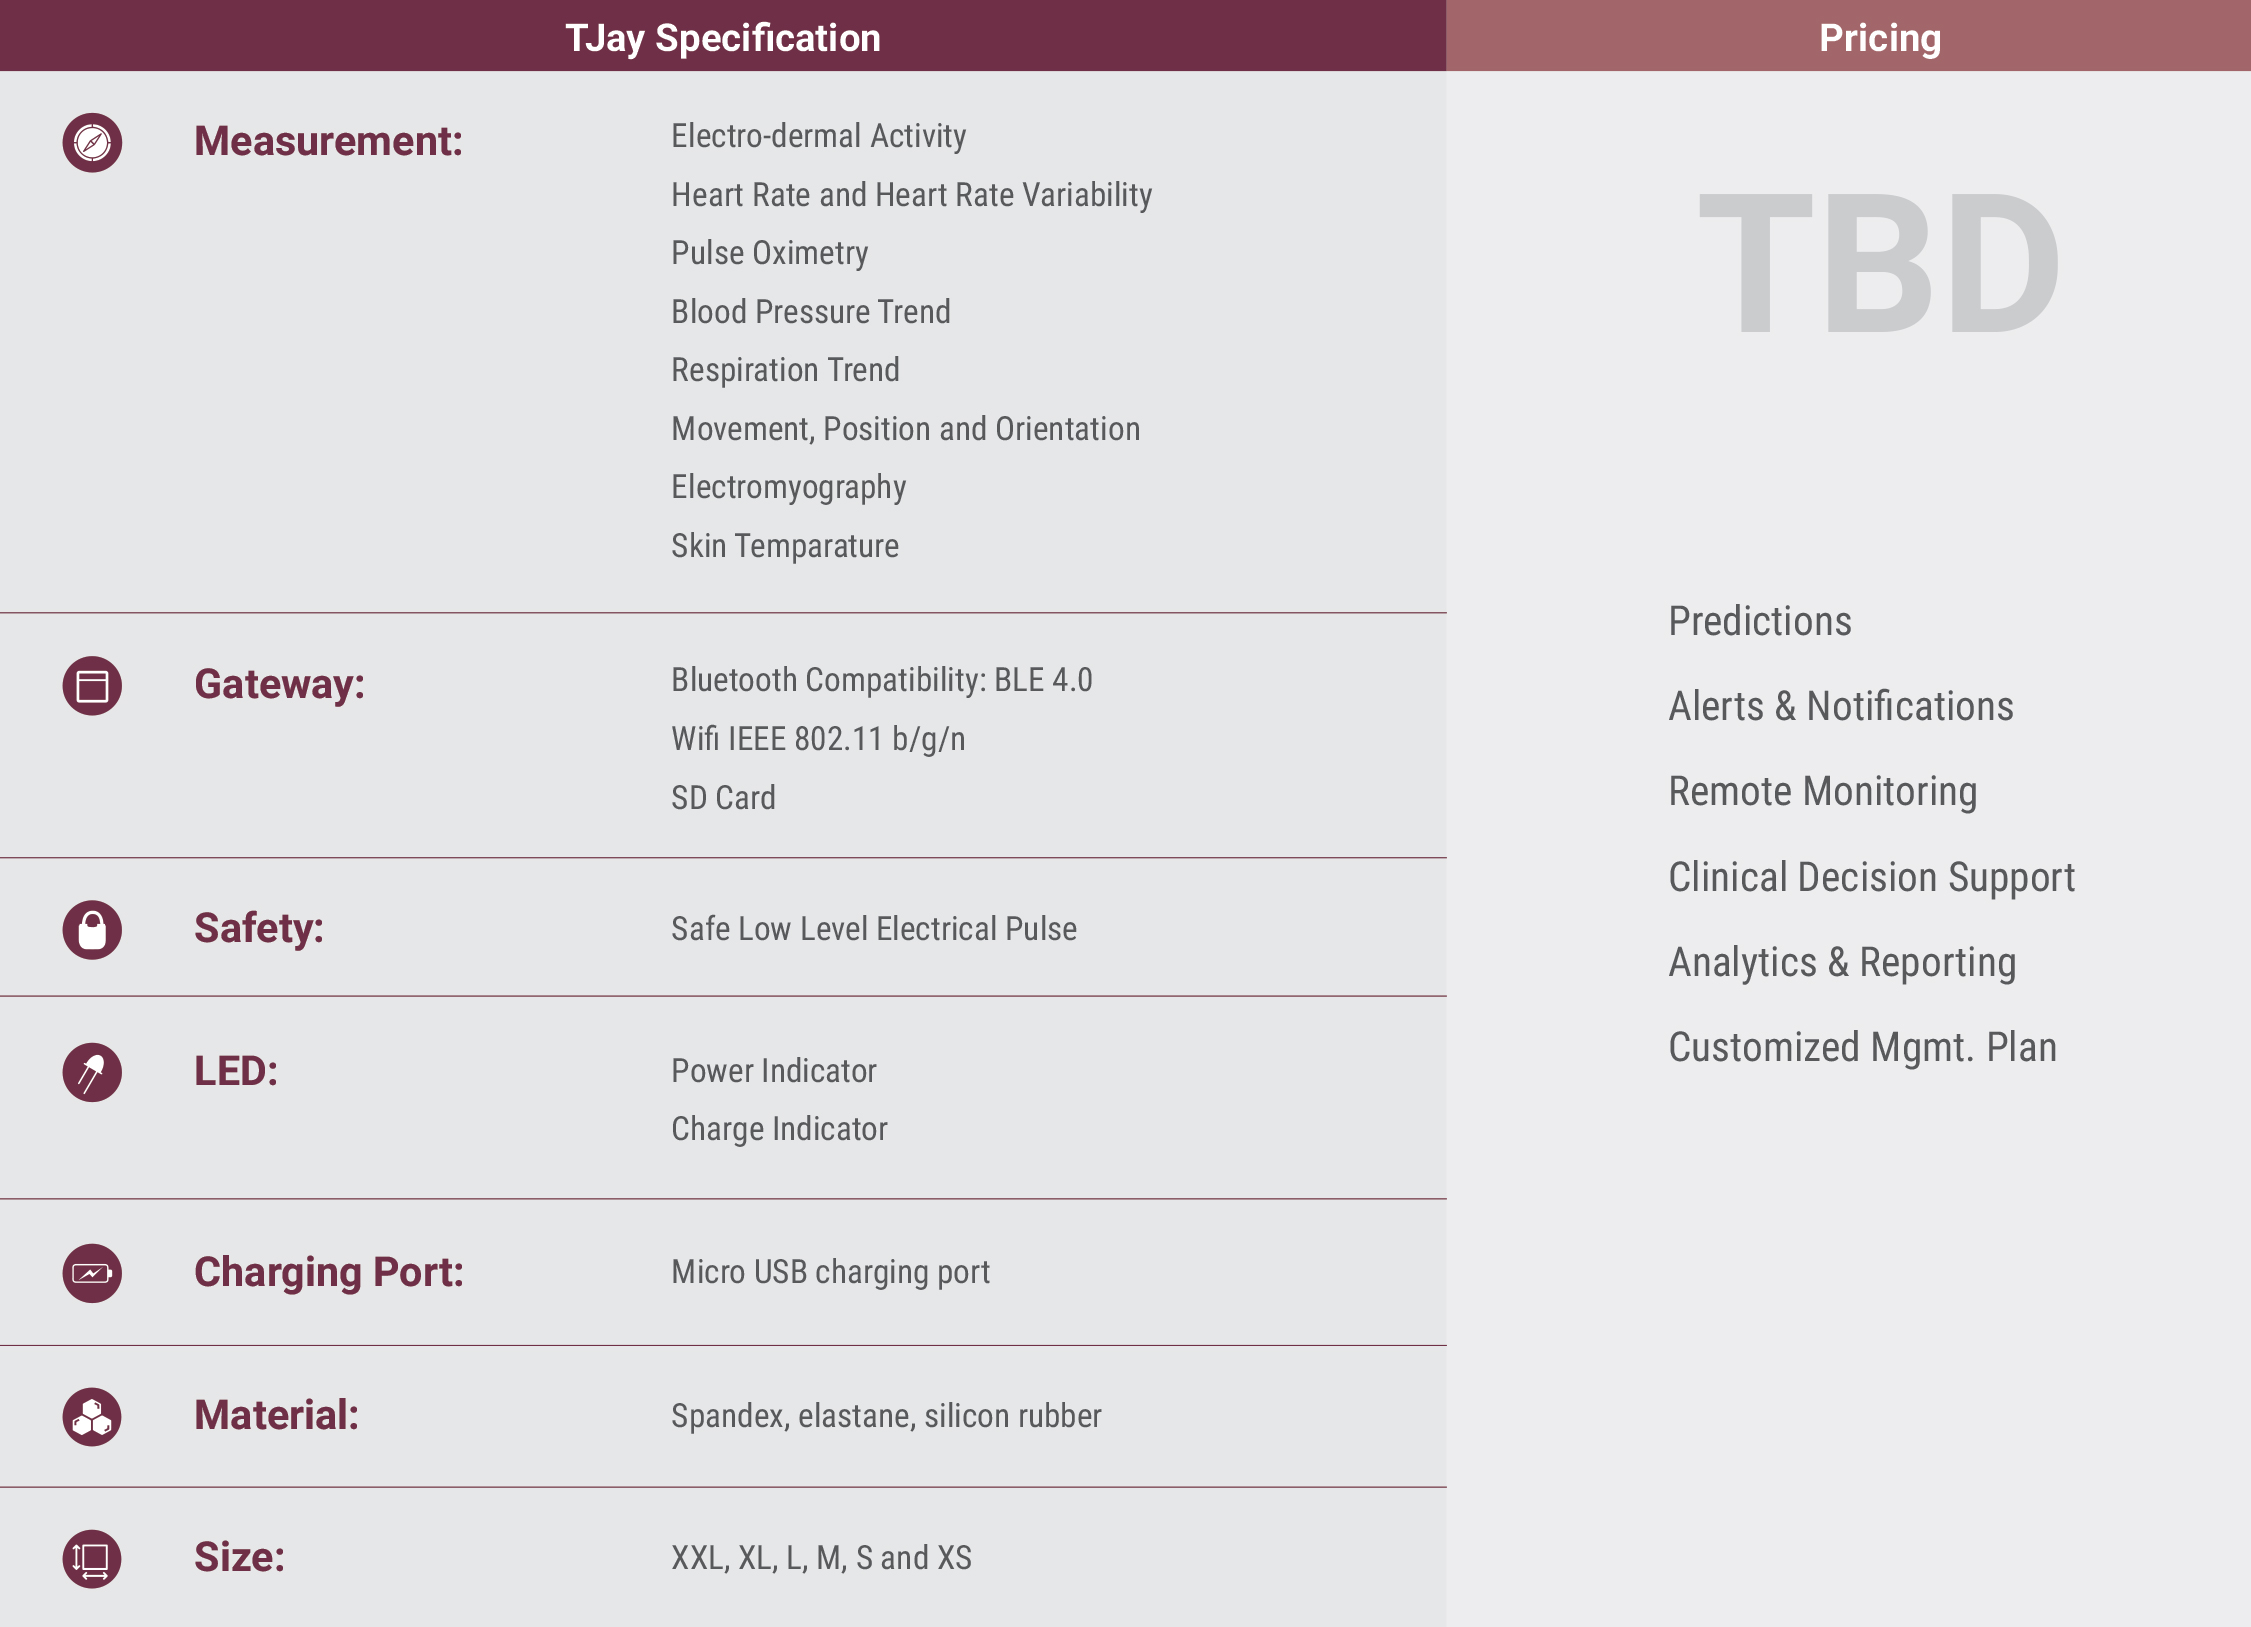 TJay Specifications